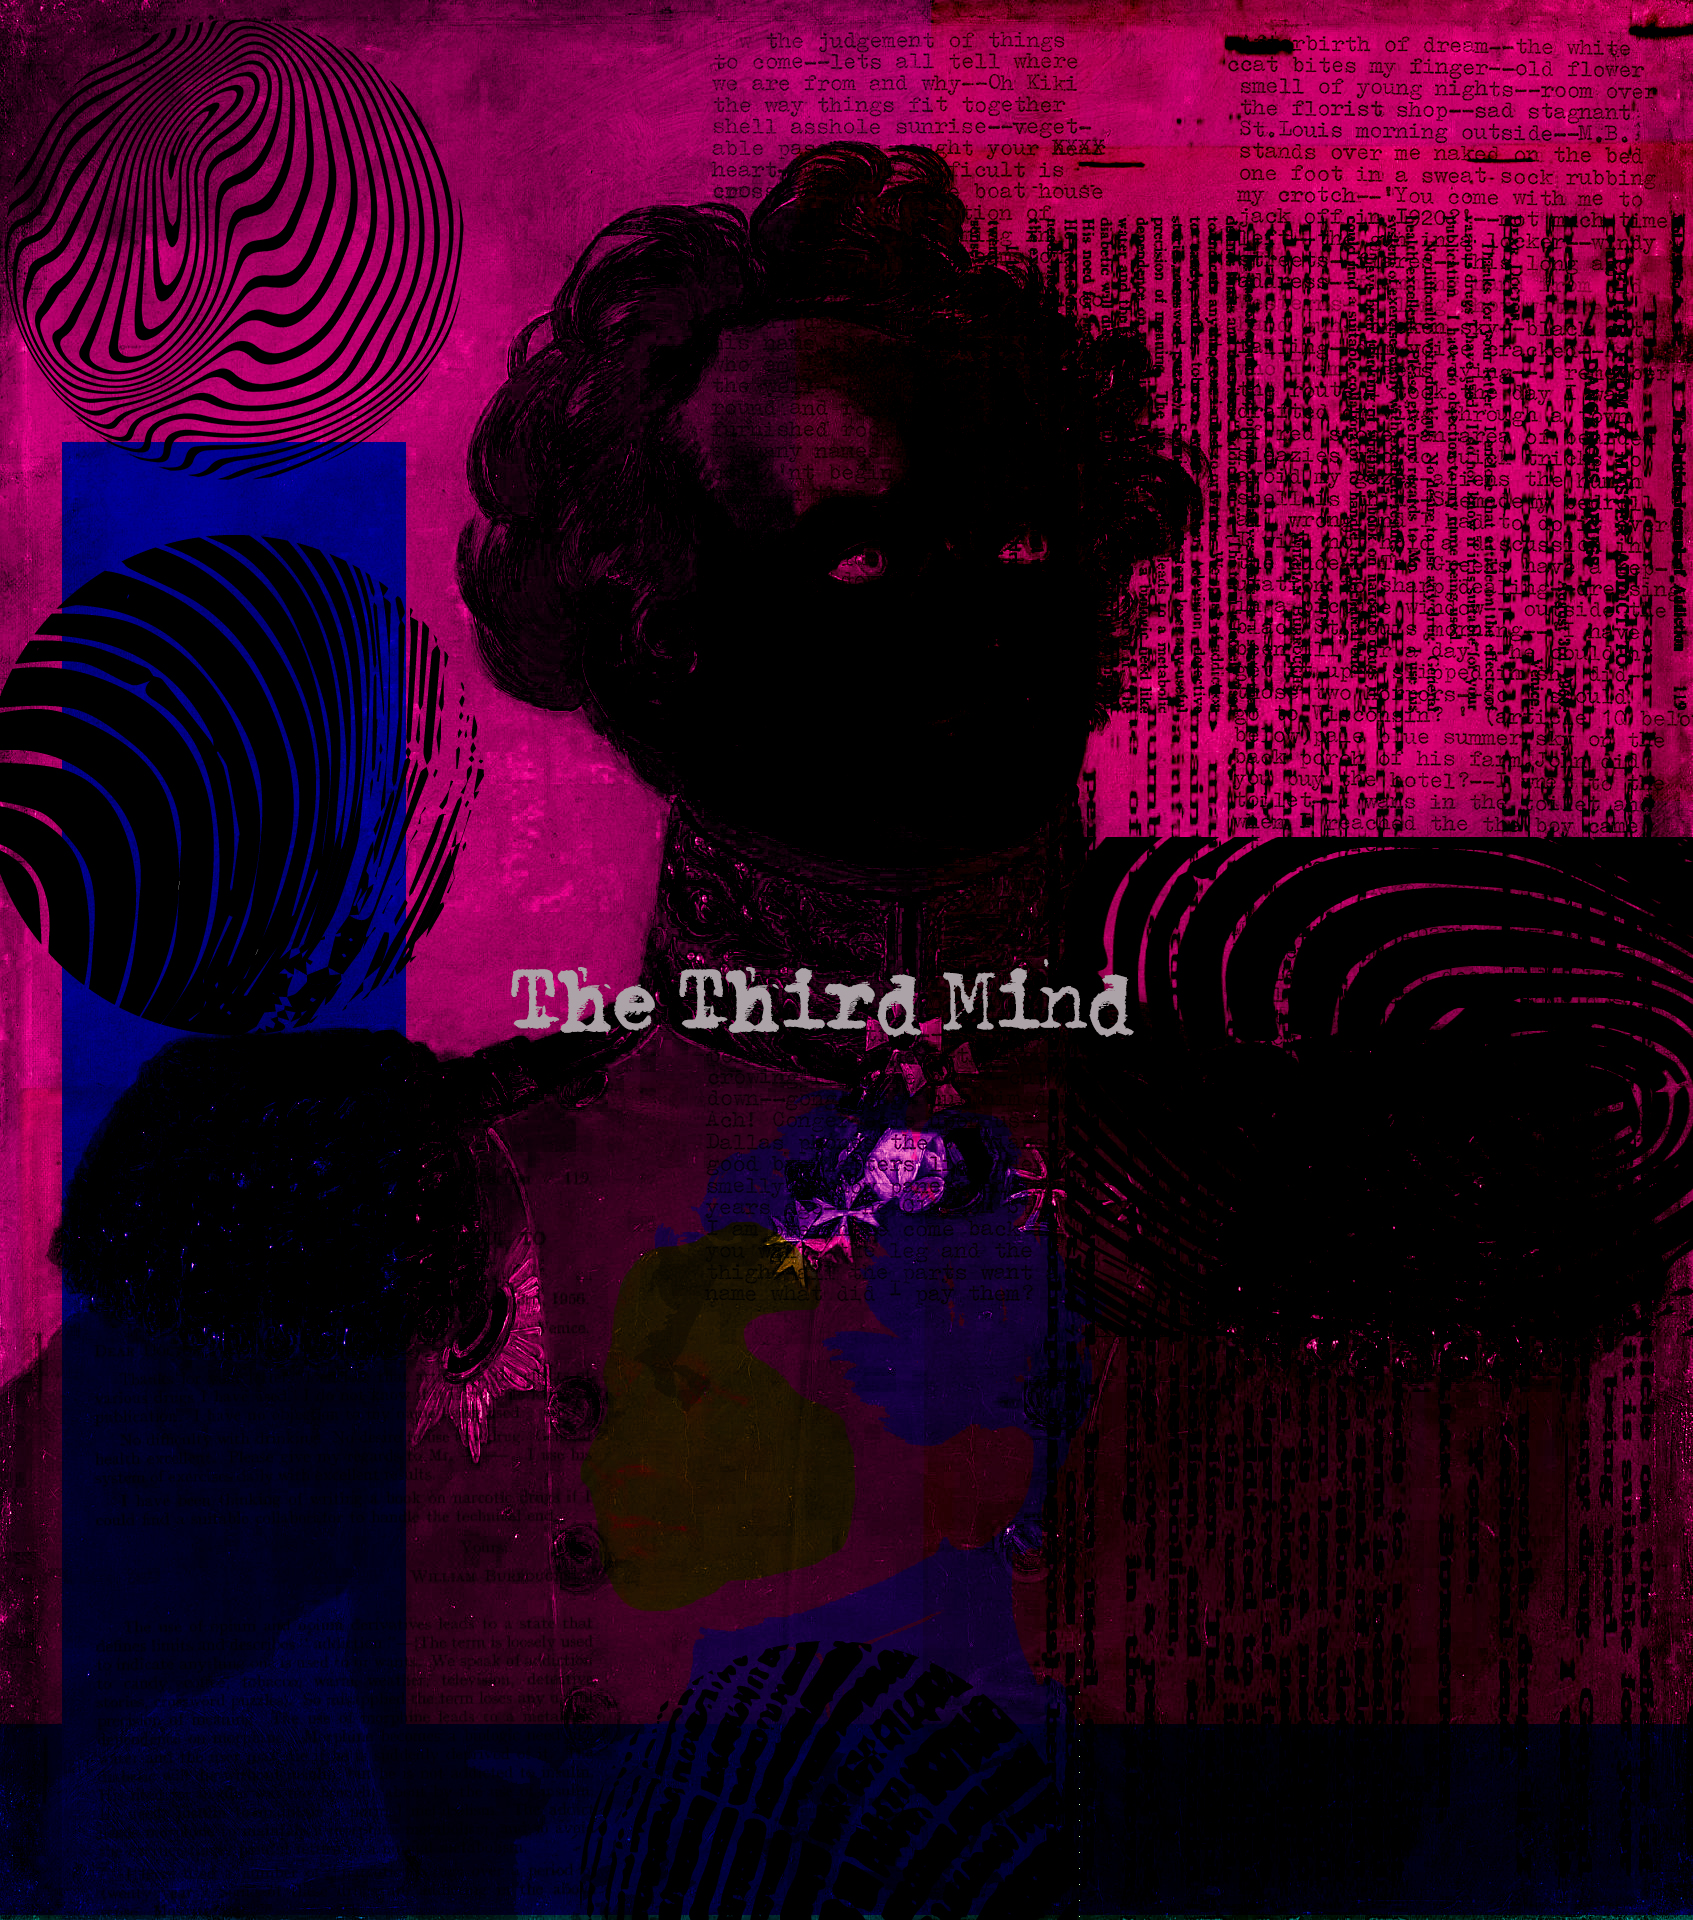 SnowSkull artwork for SWLTRX005 - The Third Mind - Consequences (Rennie Foster counter vision)